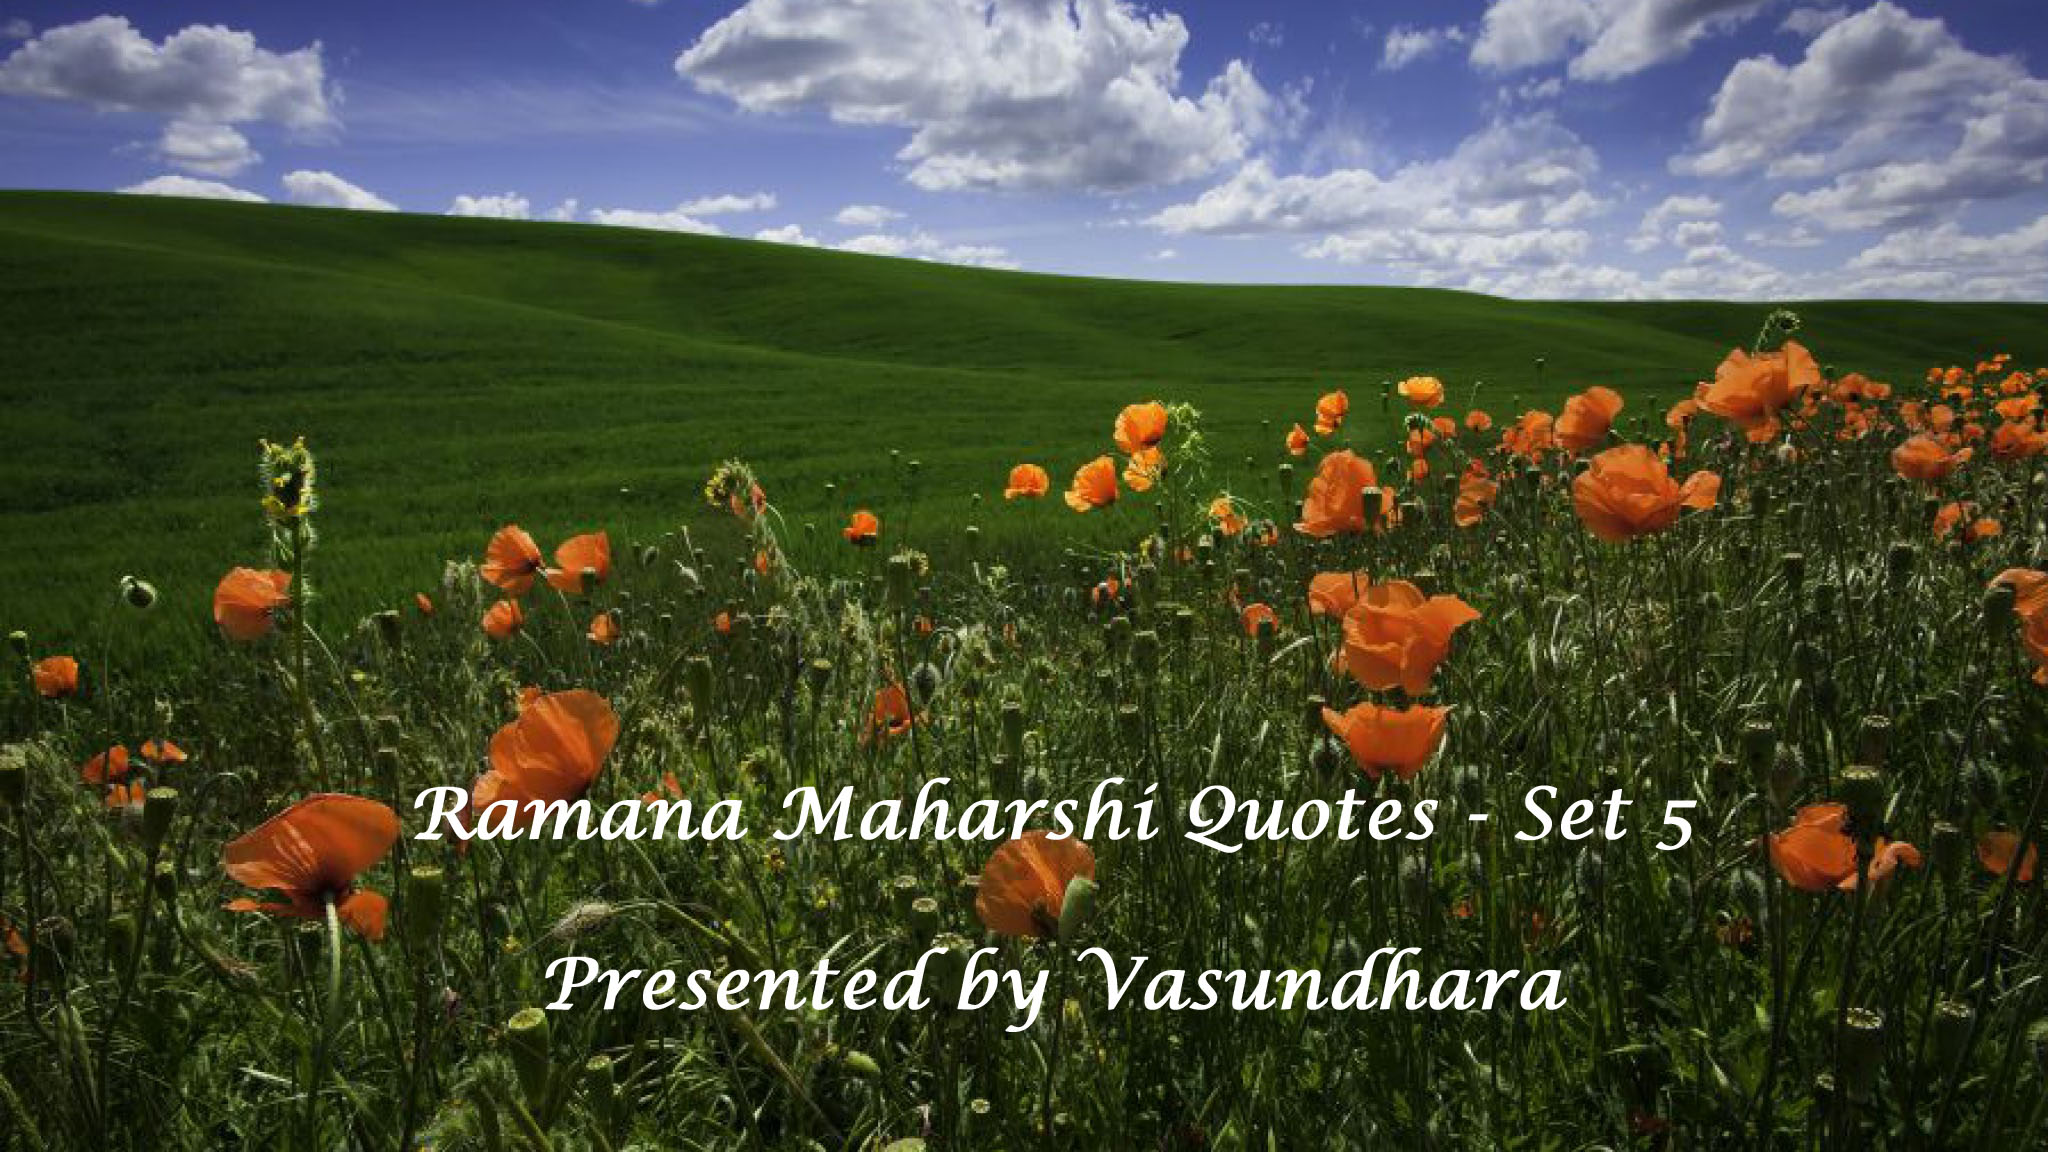 Ramana Maharshi Quotes in English - (Set 5) - Video